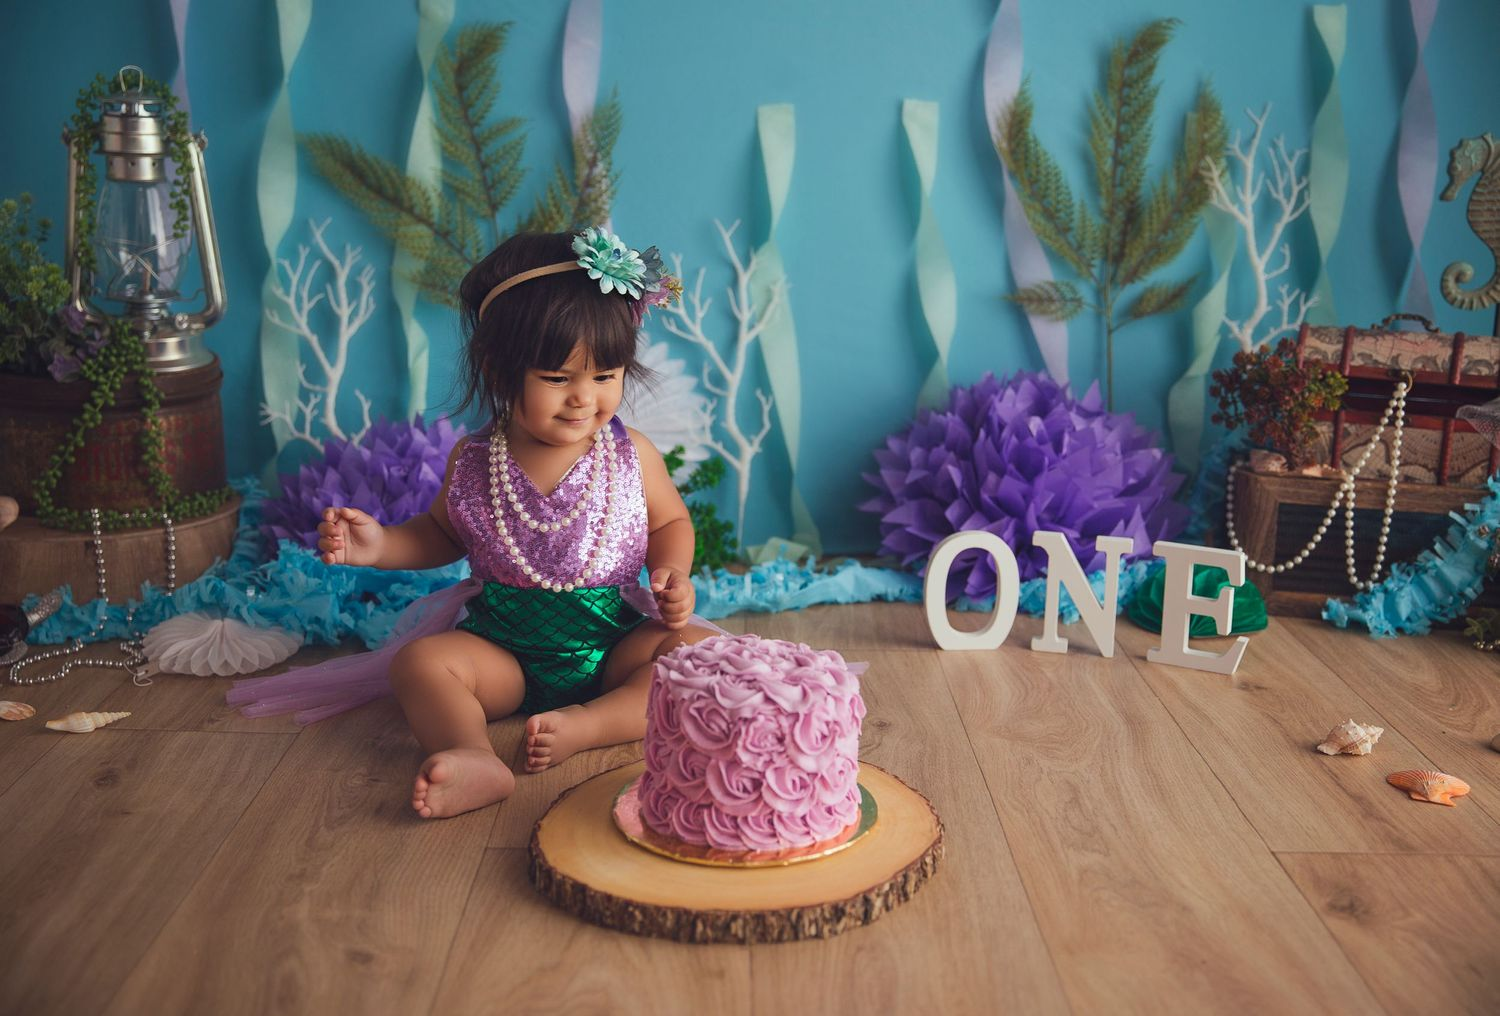 pink cake and happy baby girl mermaid themed session